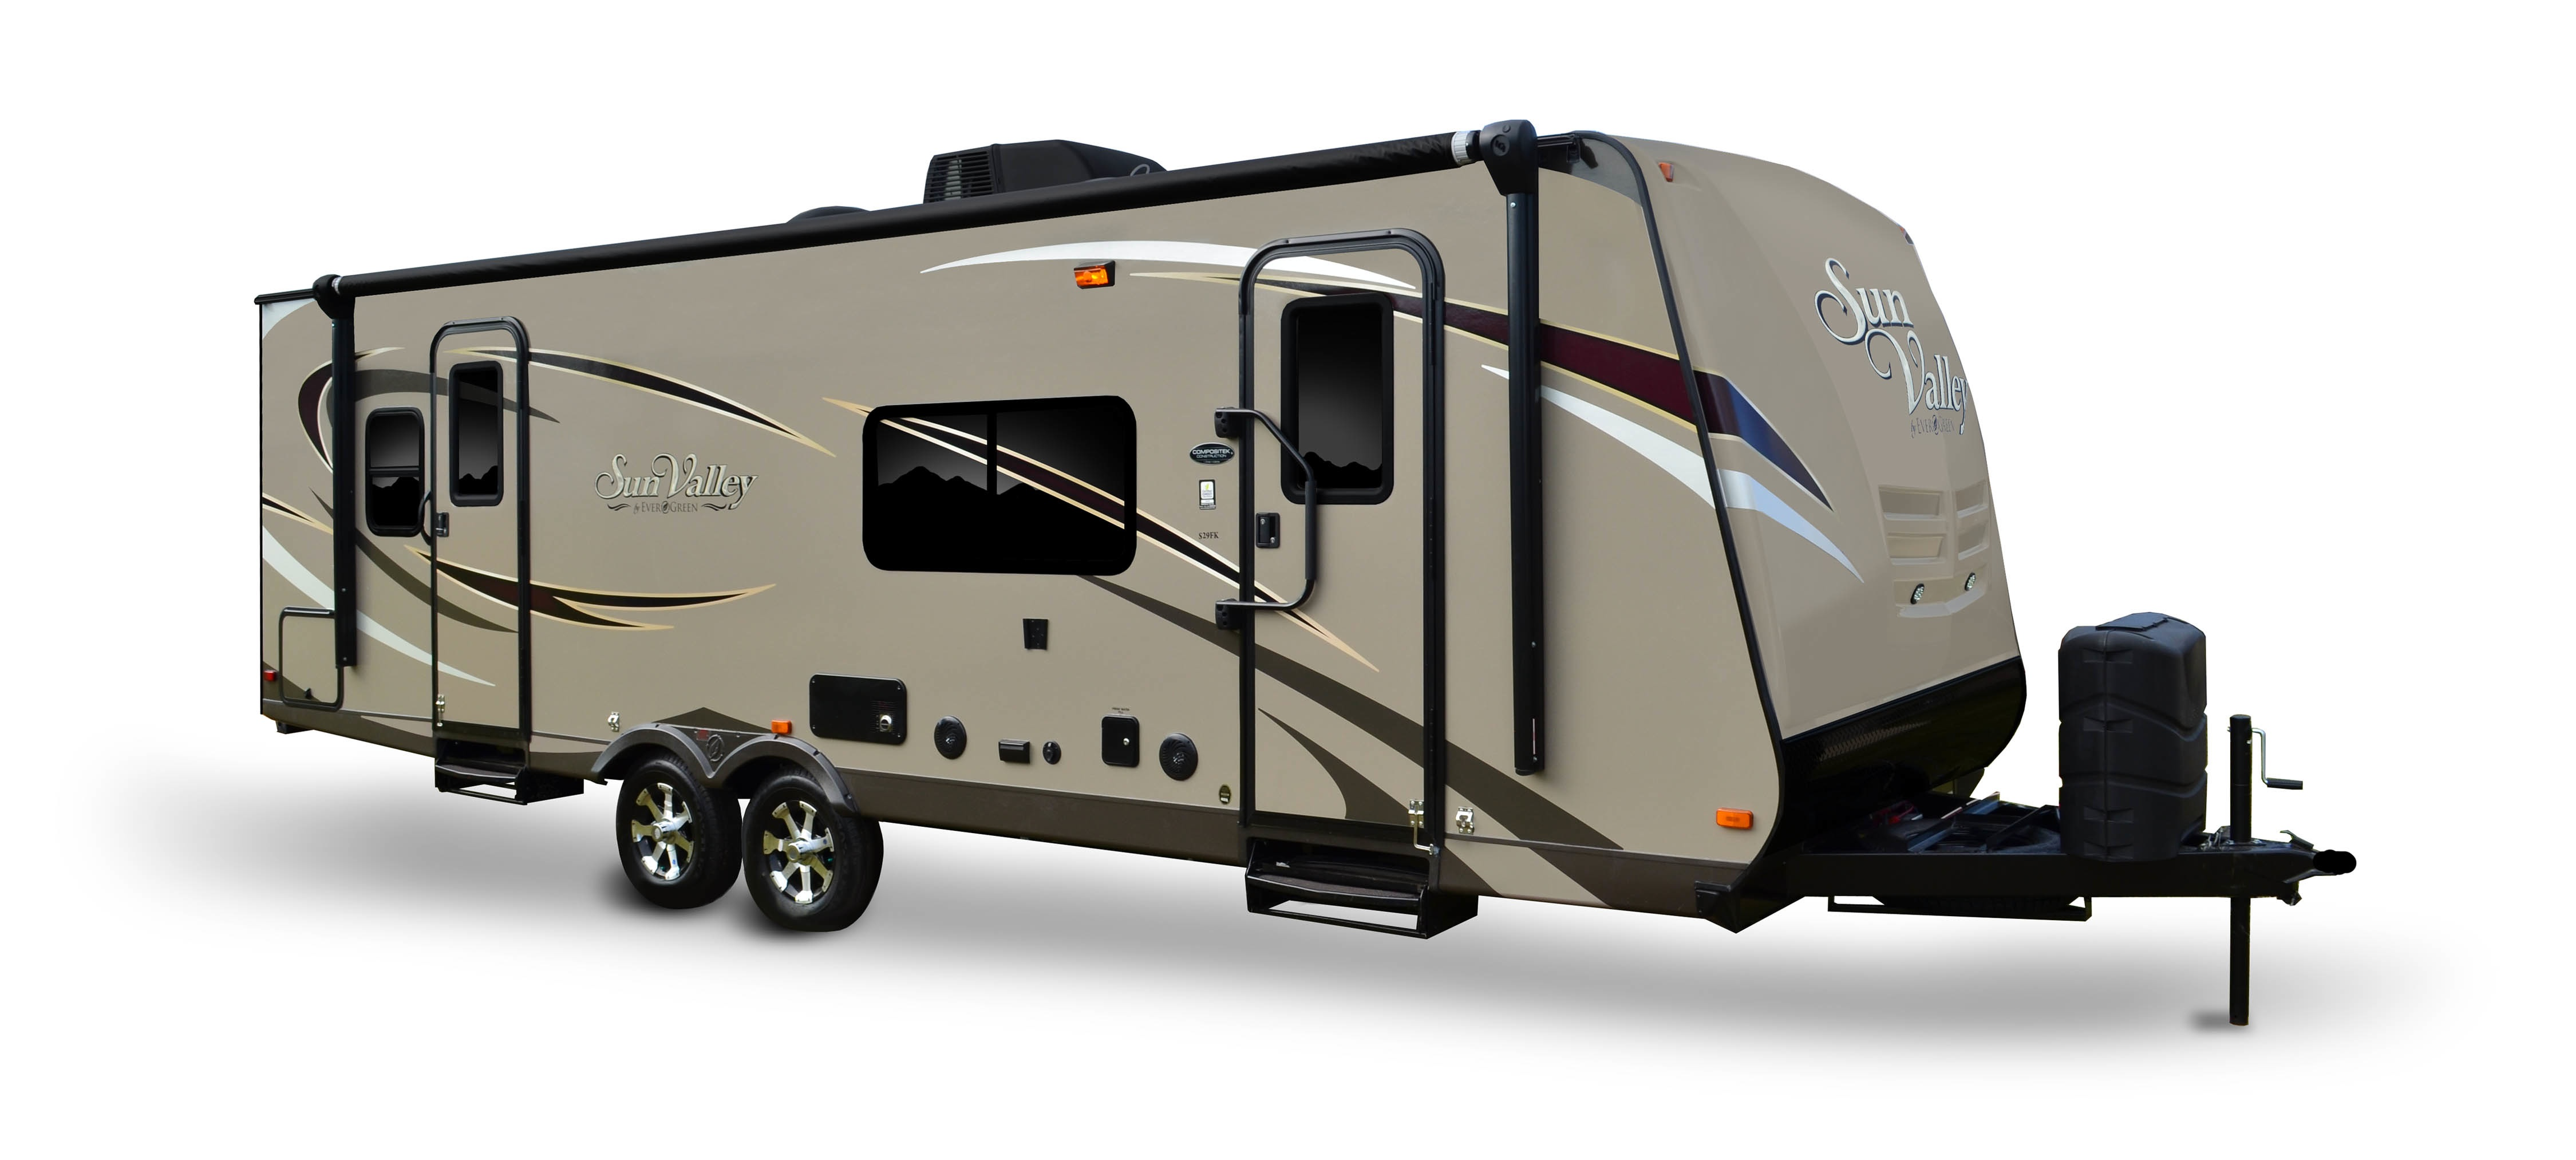 EverGreens New Sun Valley Travel Trailer Now On Lots For